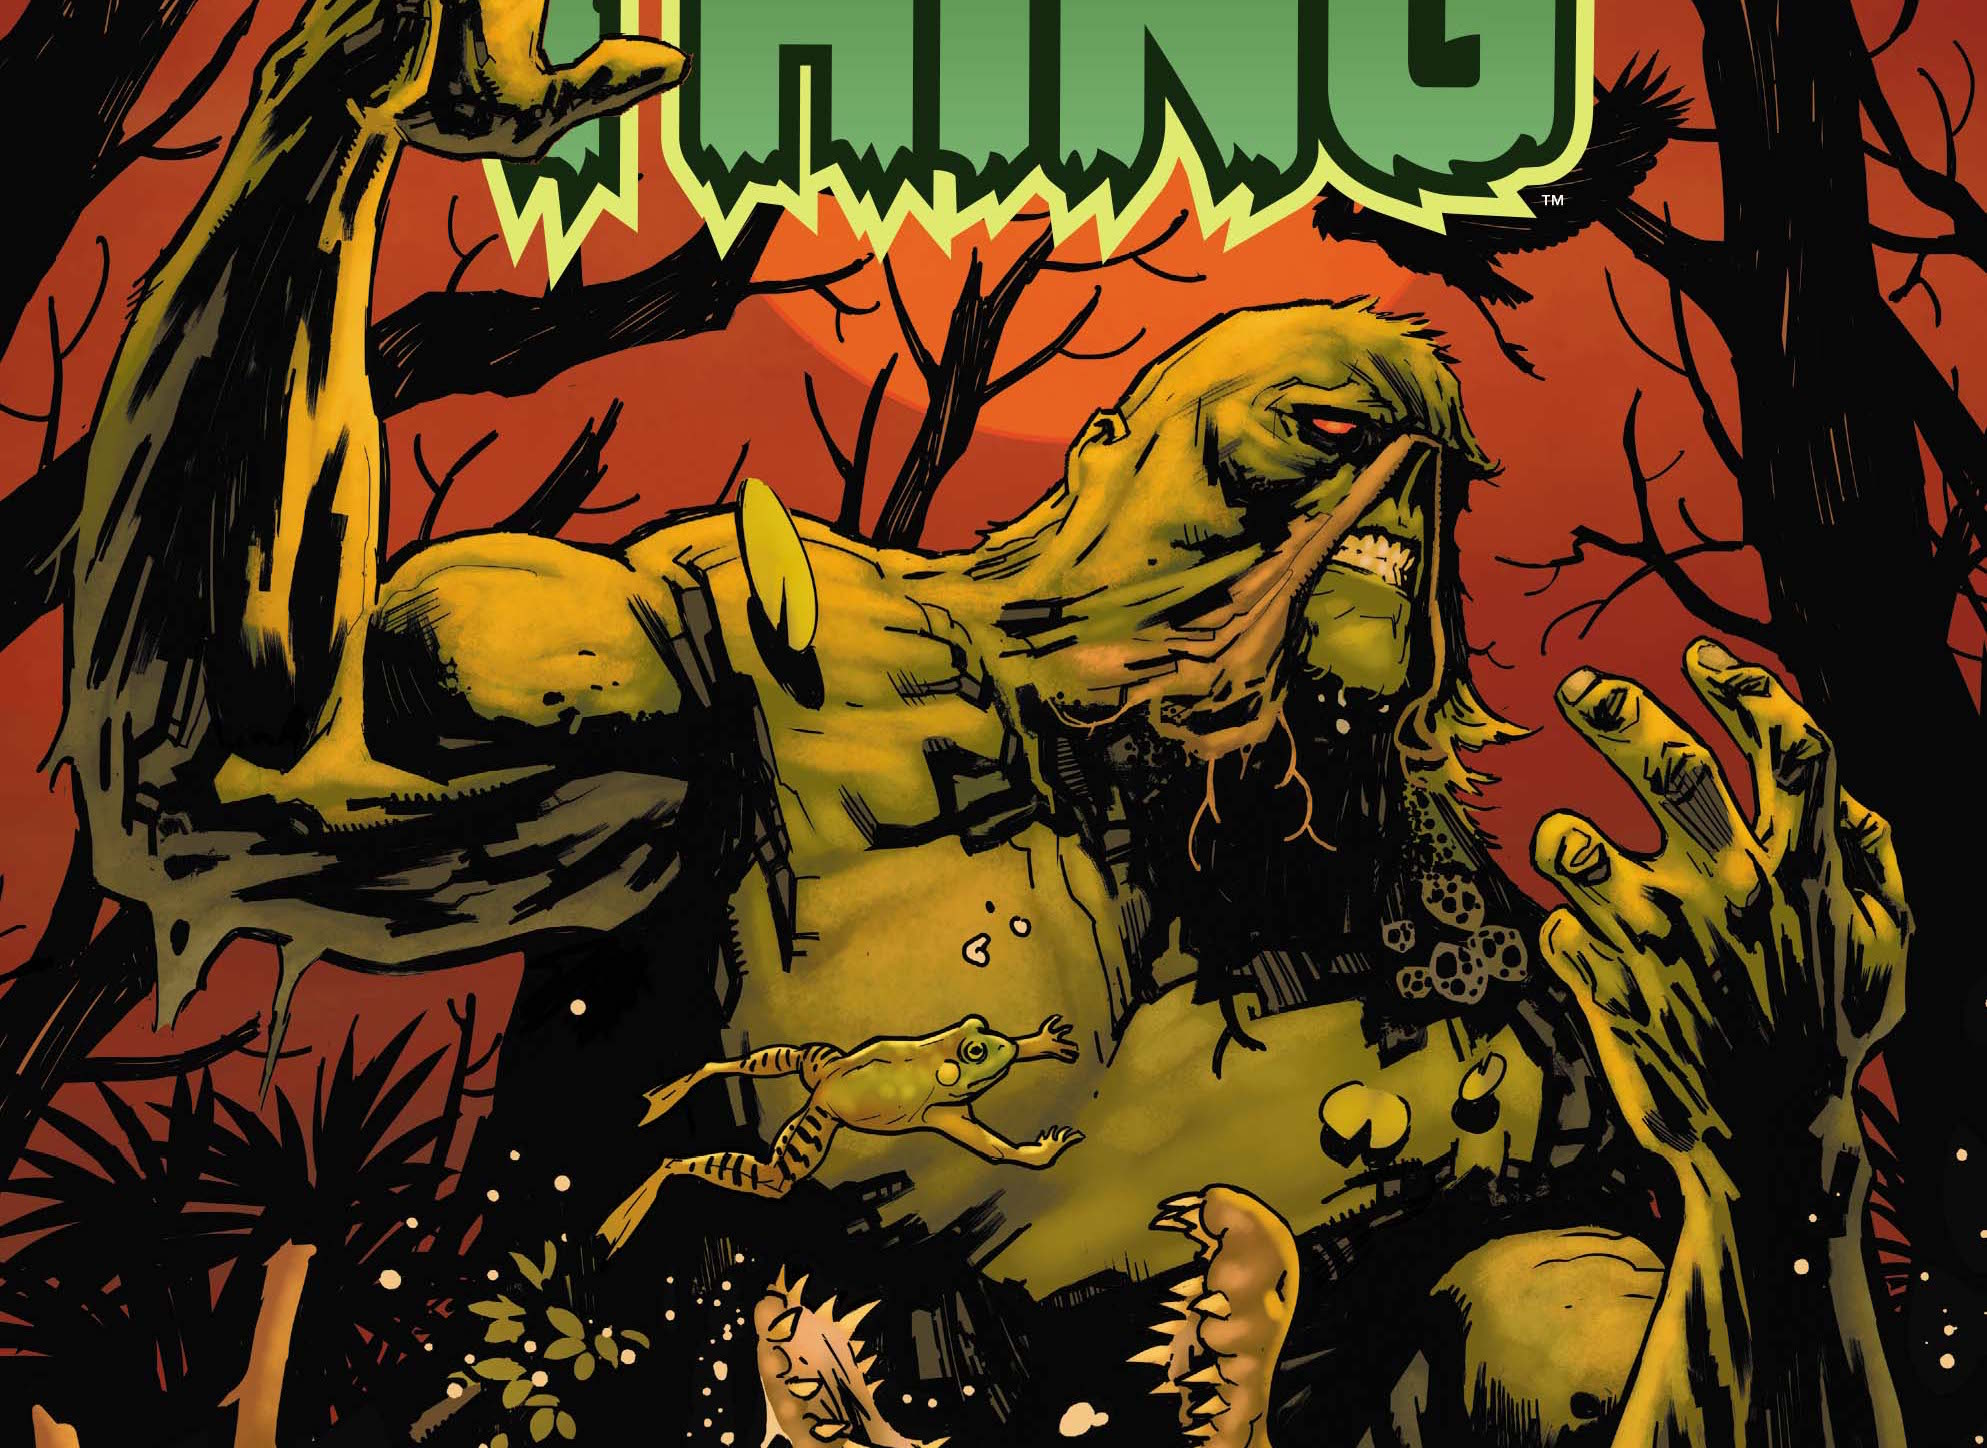 DC Preview: Swamp Thing #1